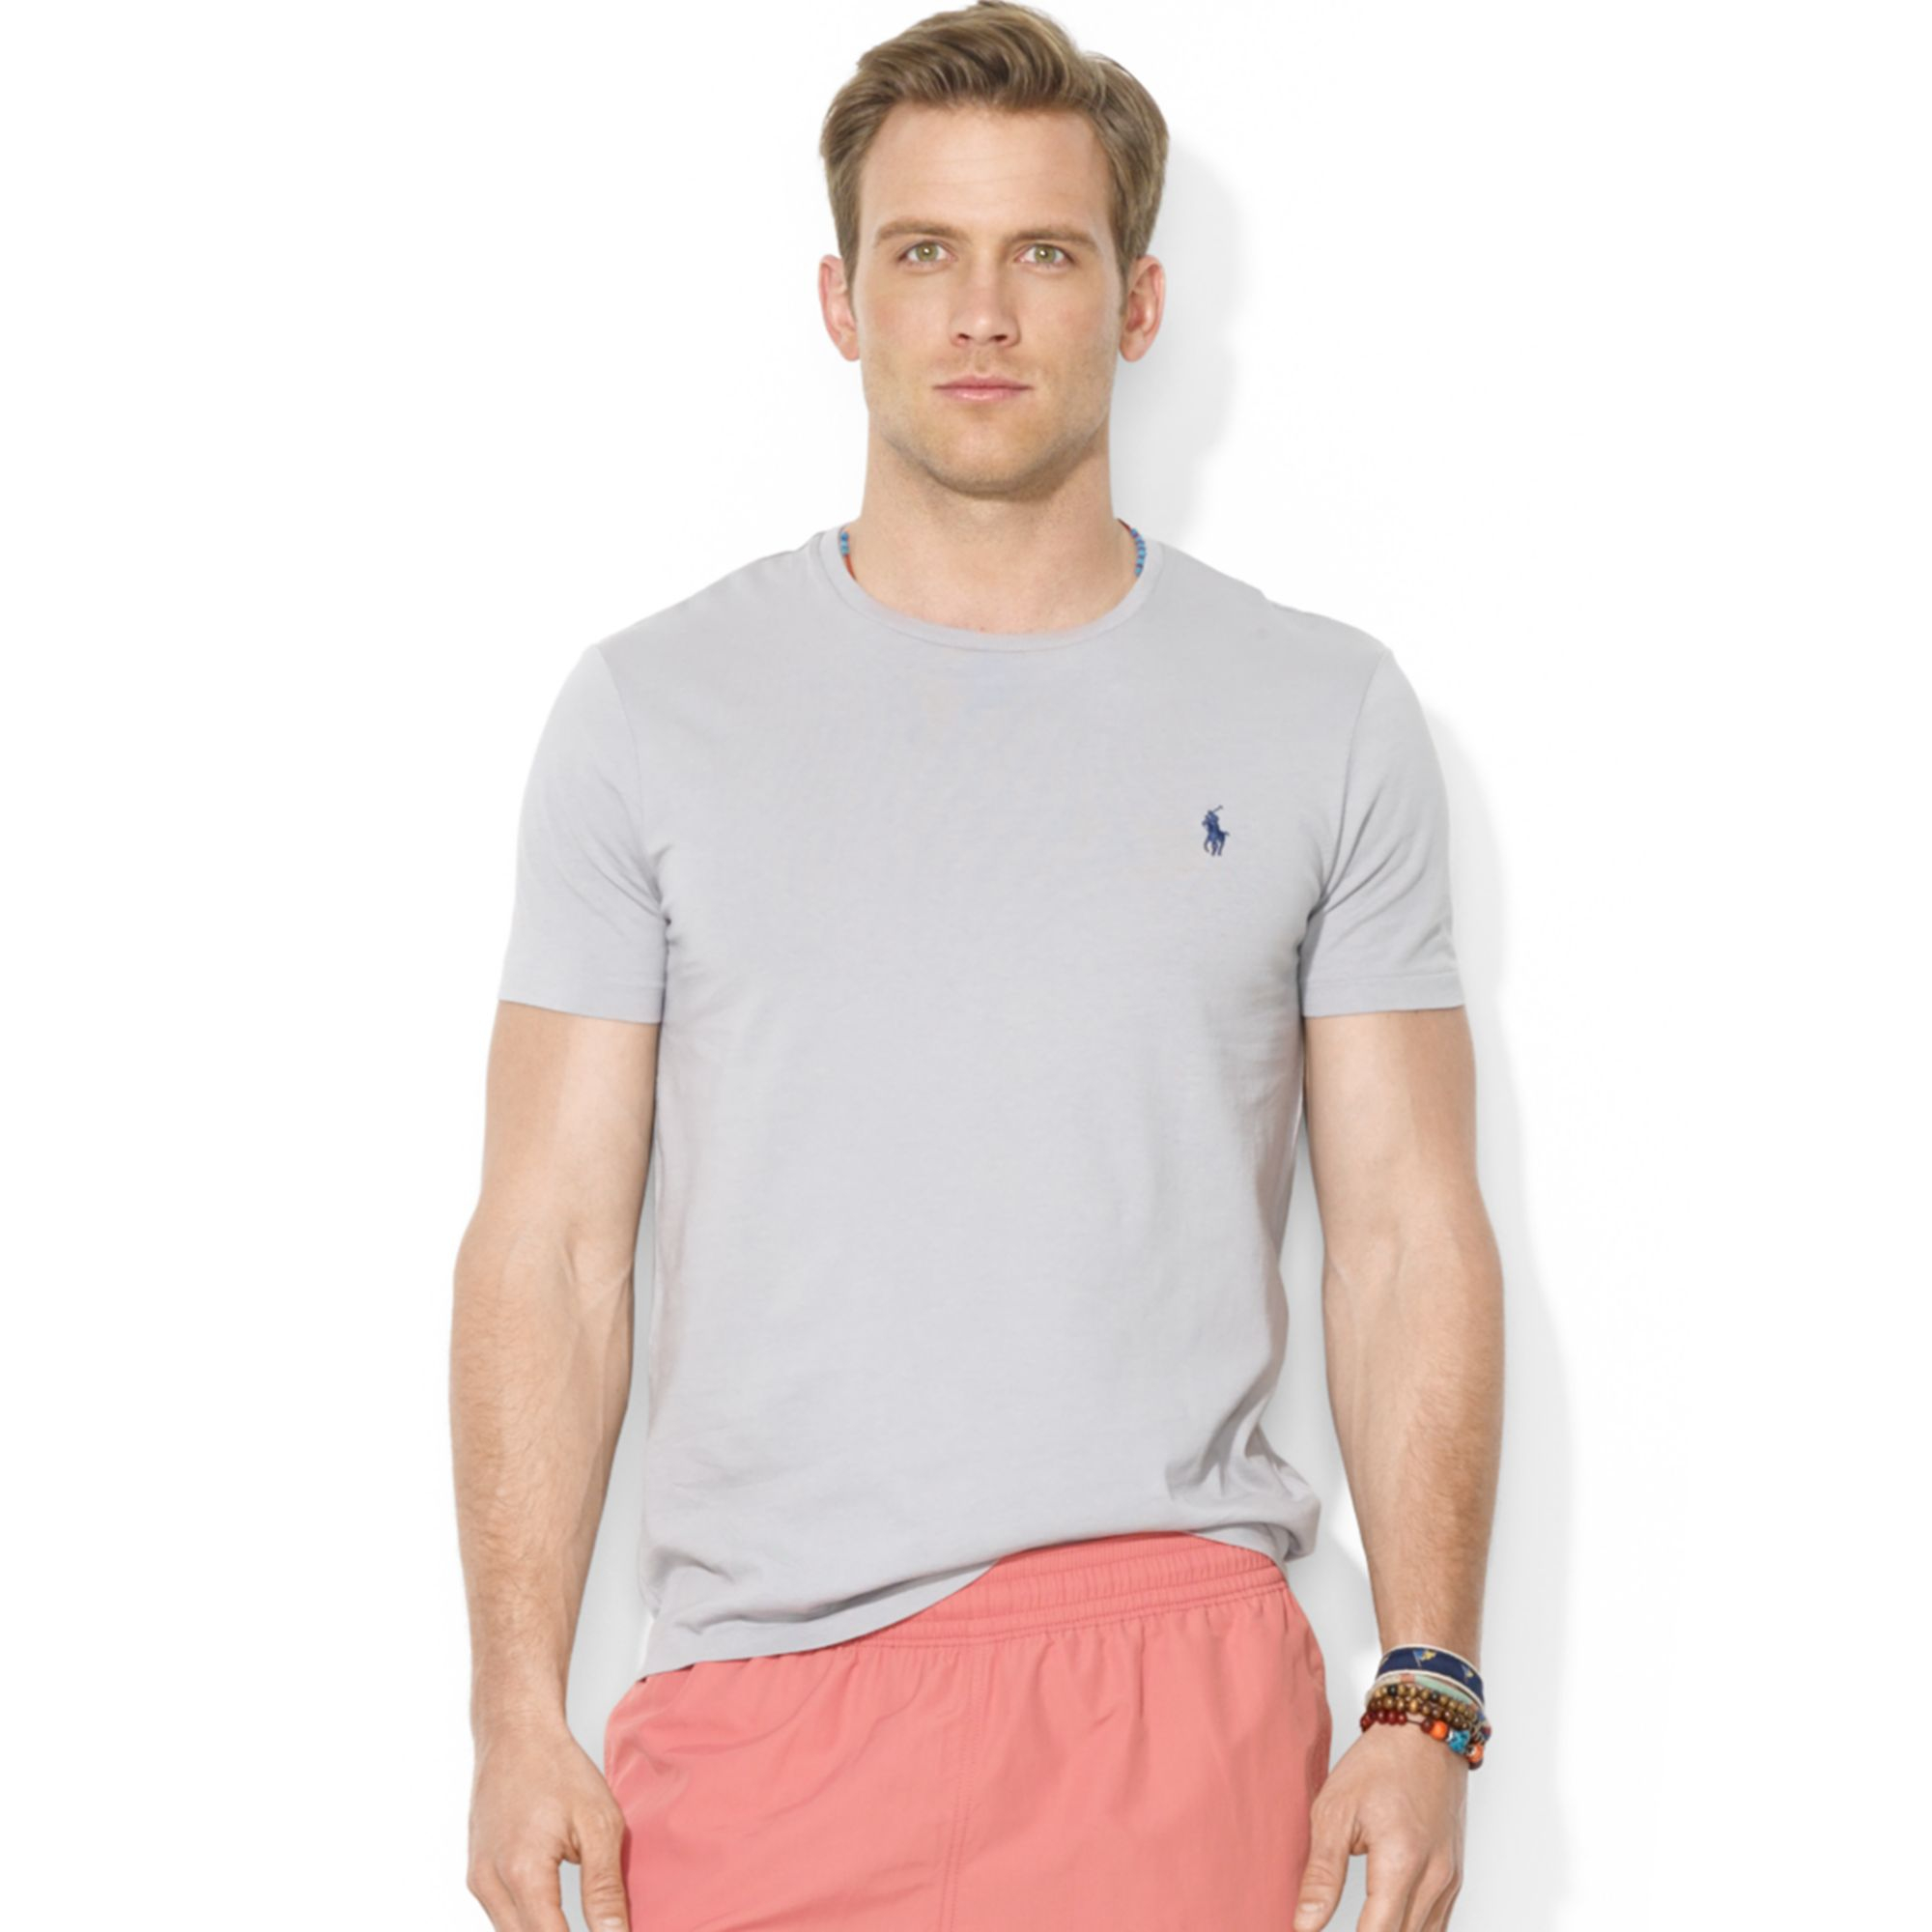 polo ralph lauren polo customfit cotton jersey crewneck tshirt in gray for men channel grey lyst. Black Bedroom Furniture Sets. Home Design Ideas